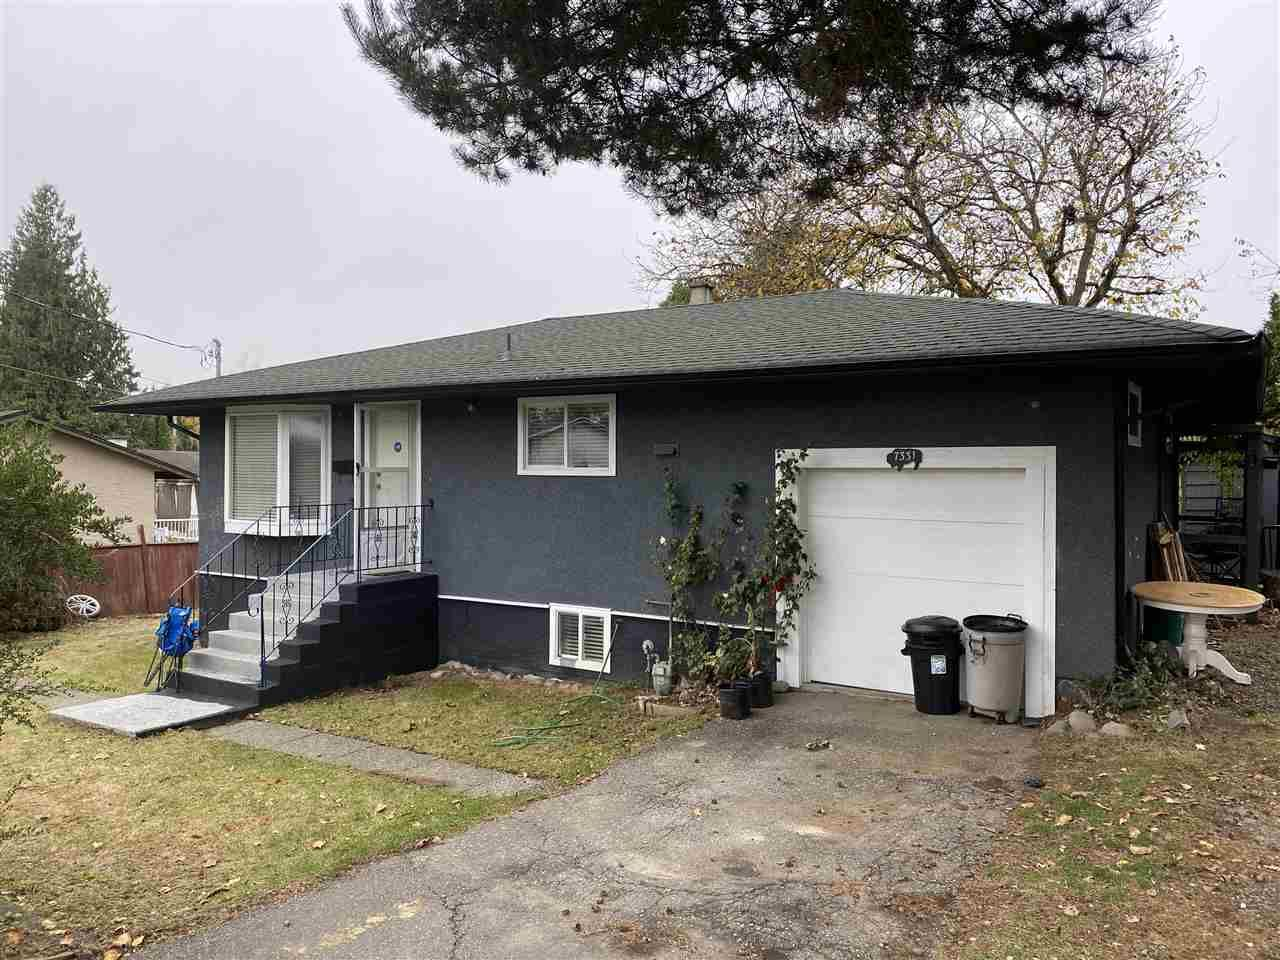 Main Photo: 7331 WREN Street in Mission: Mission BC House for sale : MLS®# R2517239